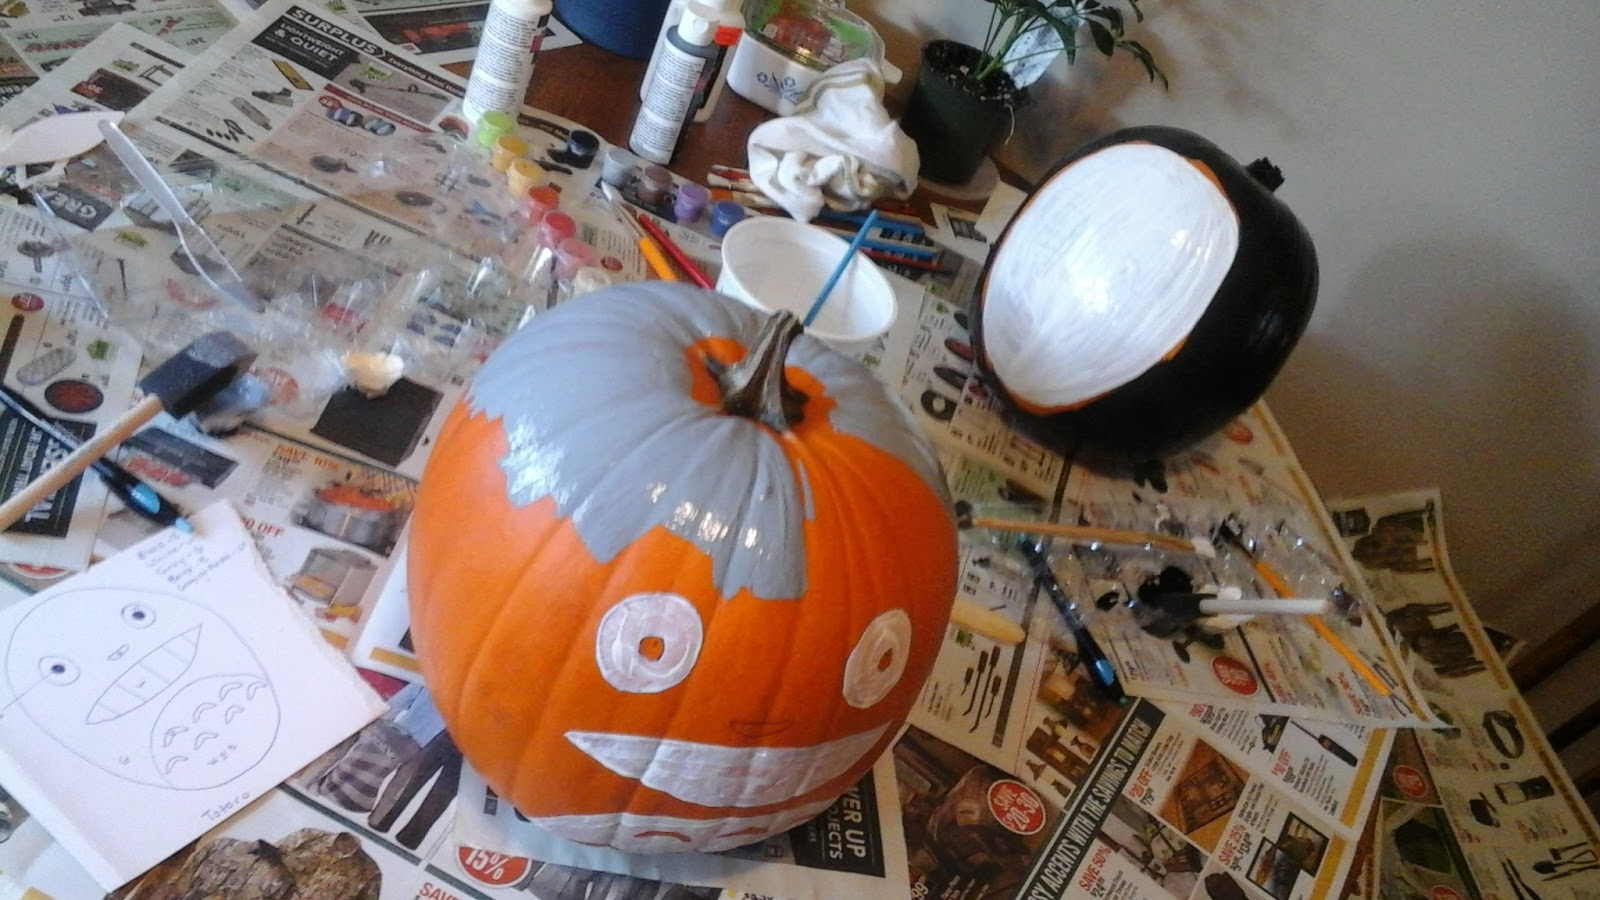 Keen Koala Halloween Diy Totoro And No Face Painted Pumpkin Tutorial Diagram Of A Please See The That You Used During To Drawing Step Determine Which Area Should Be Color Course Can Paint Your Any